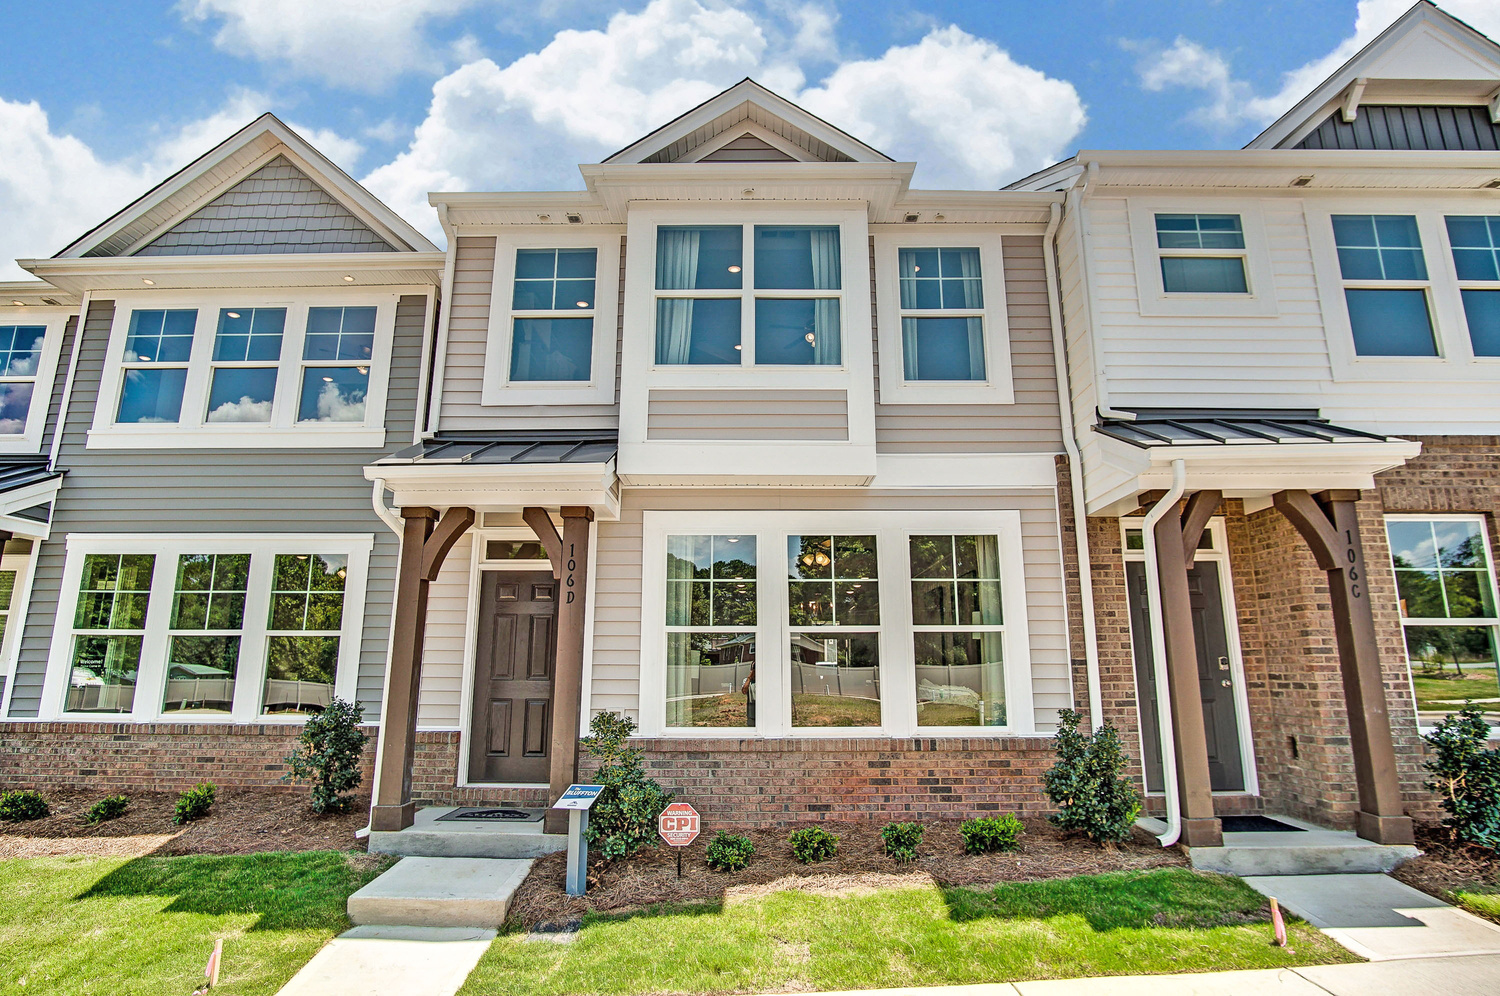 Bluffton Townhome Exterior